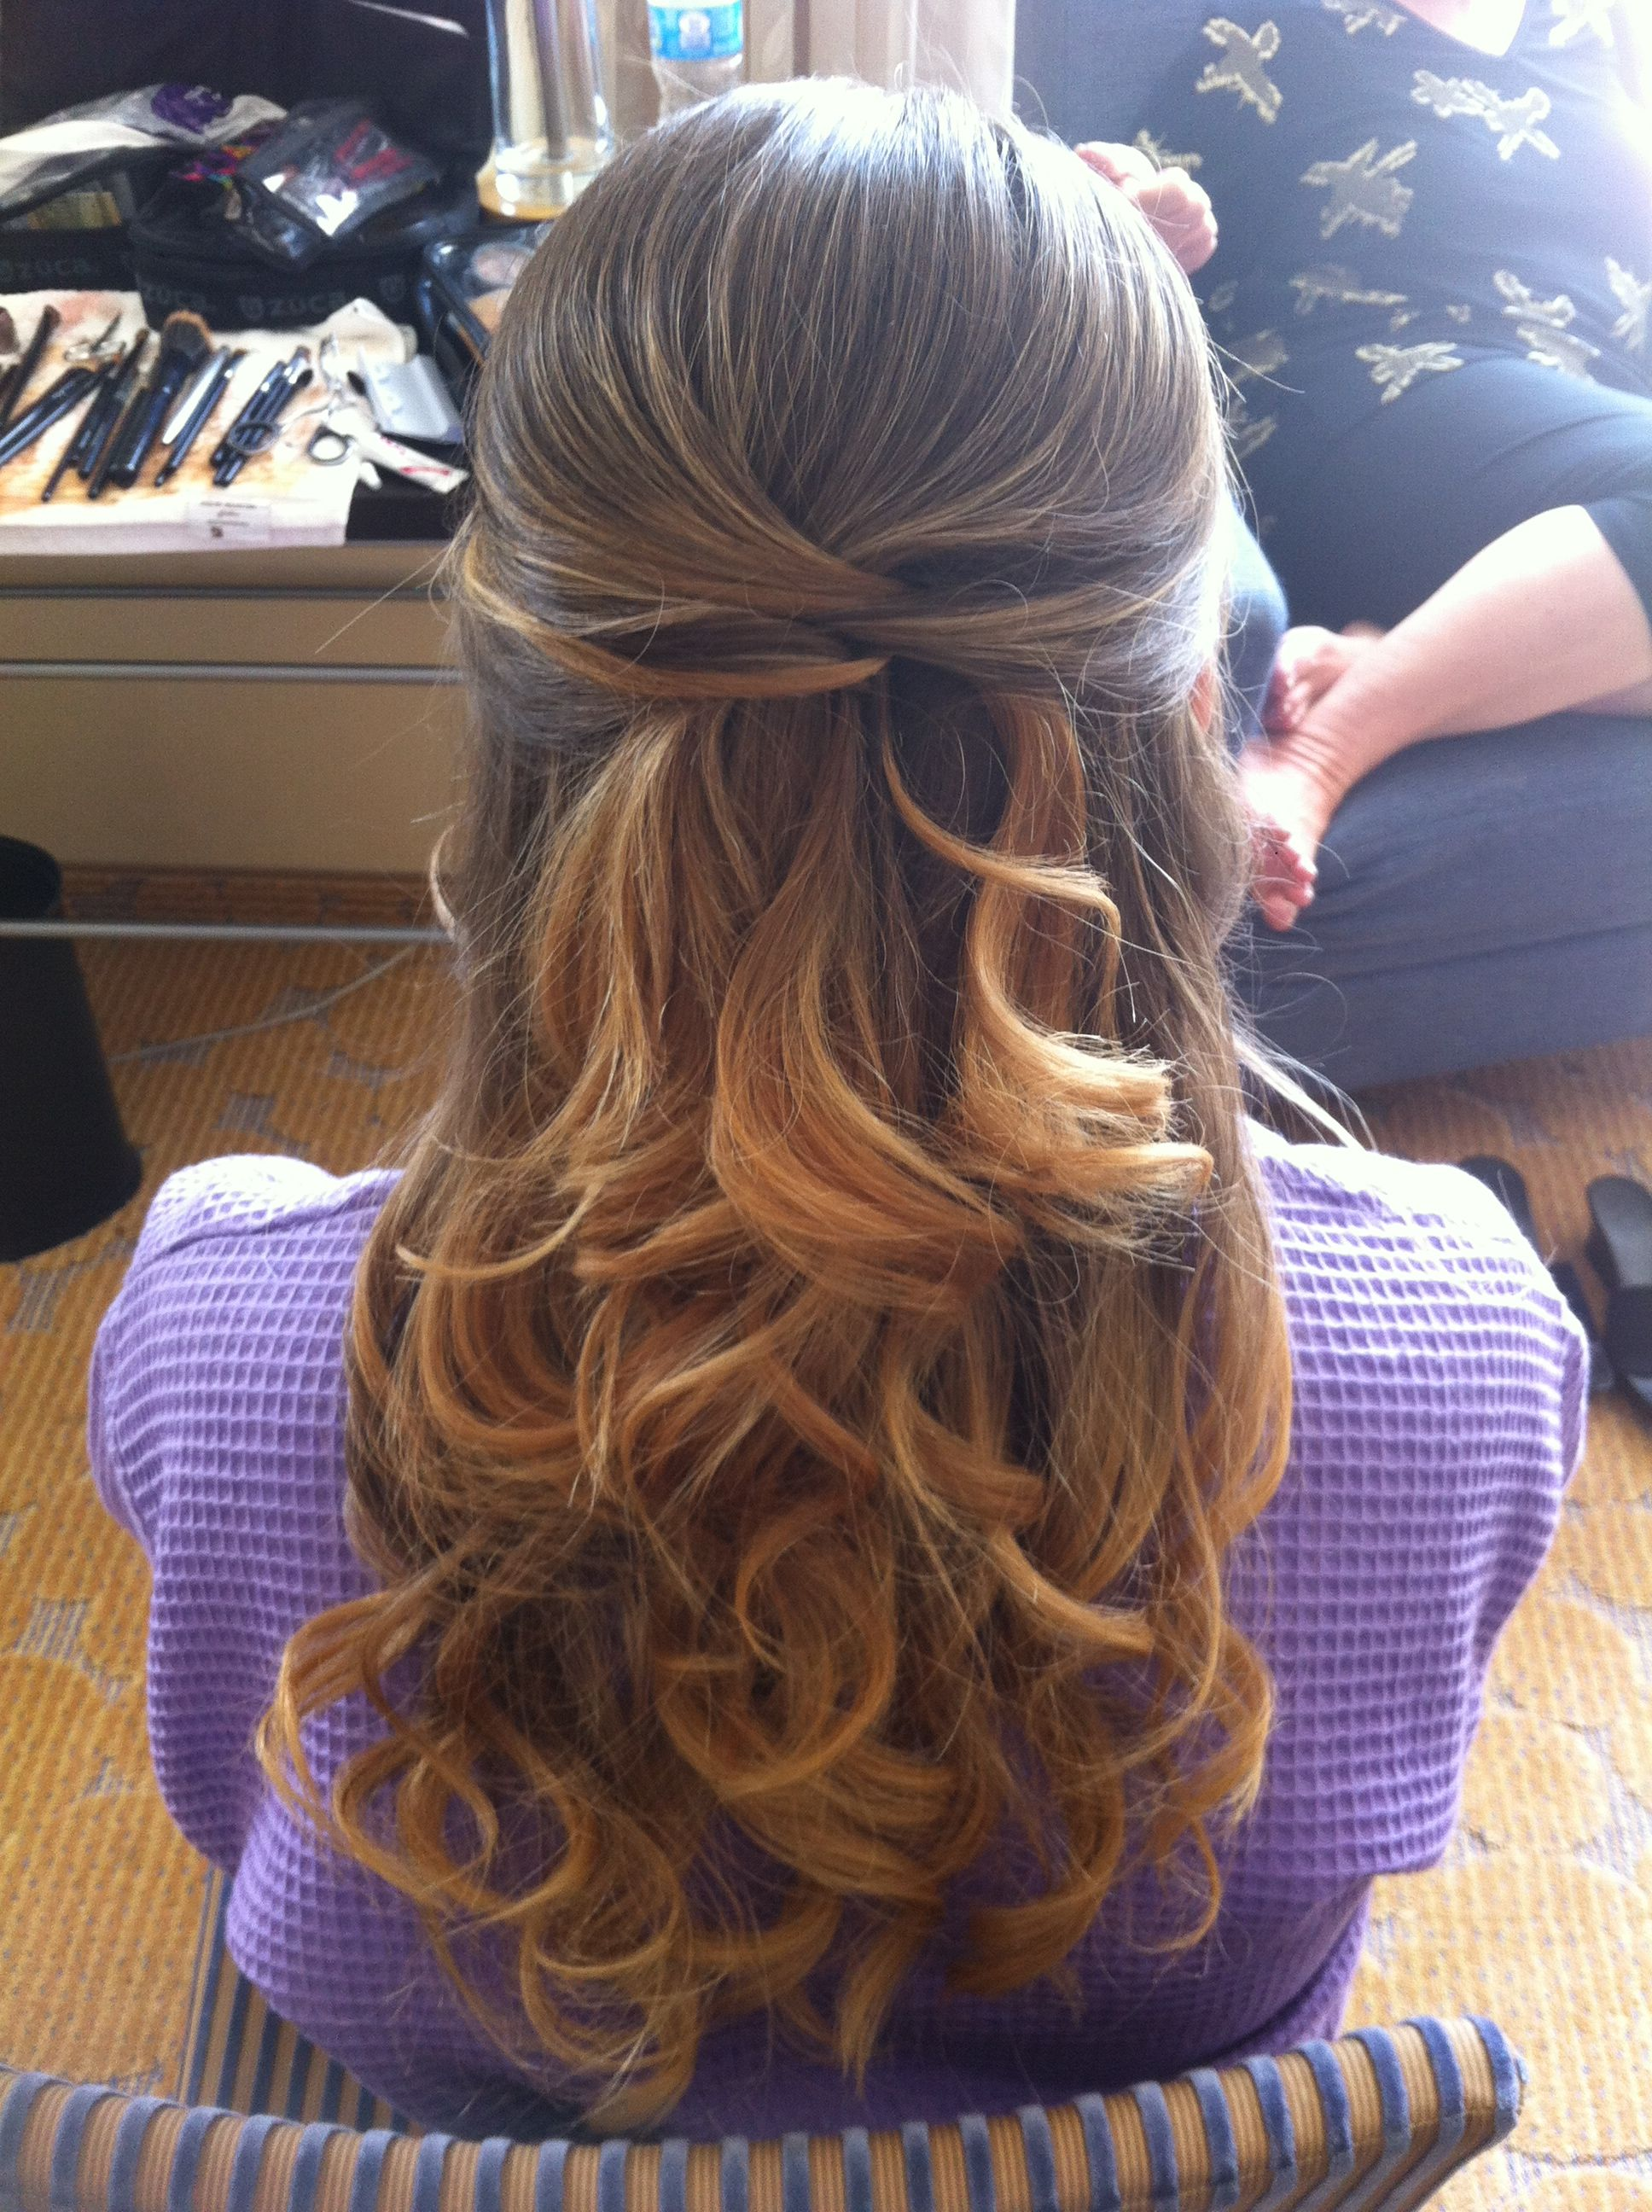 Bridal hair vintage waves soft curls prom wedding updo romantic